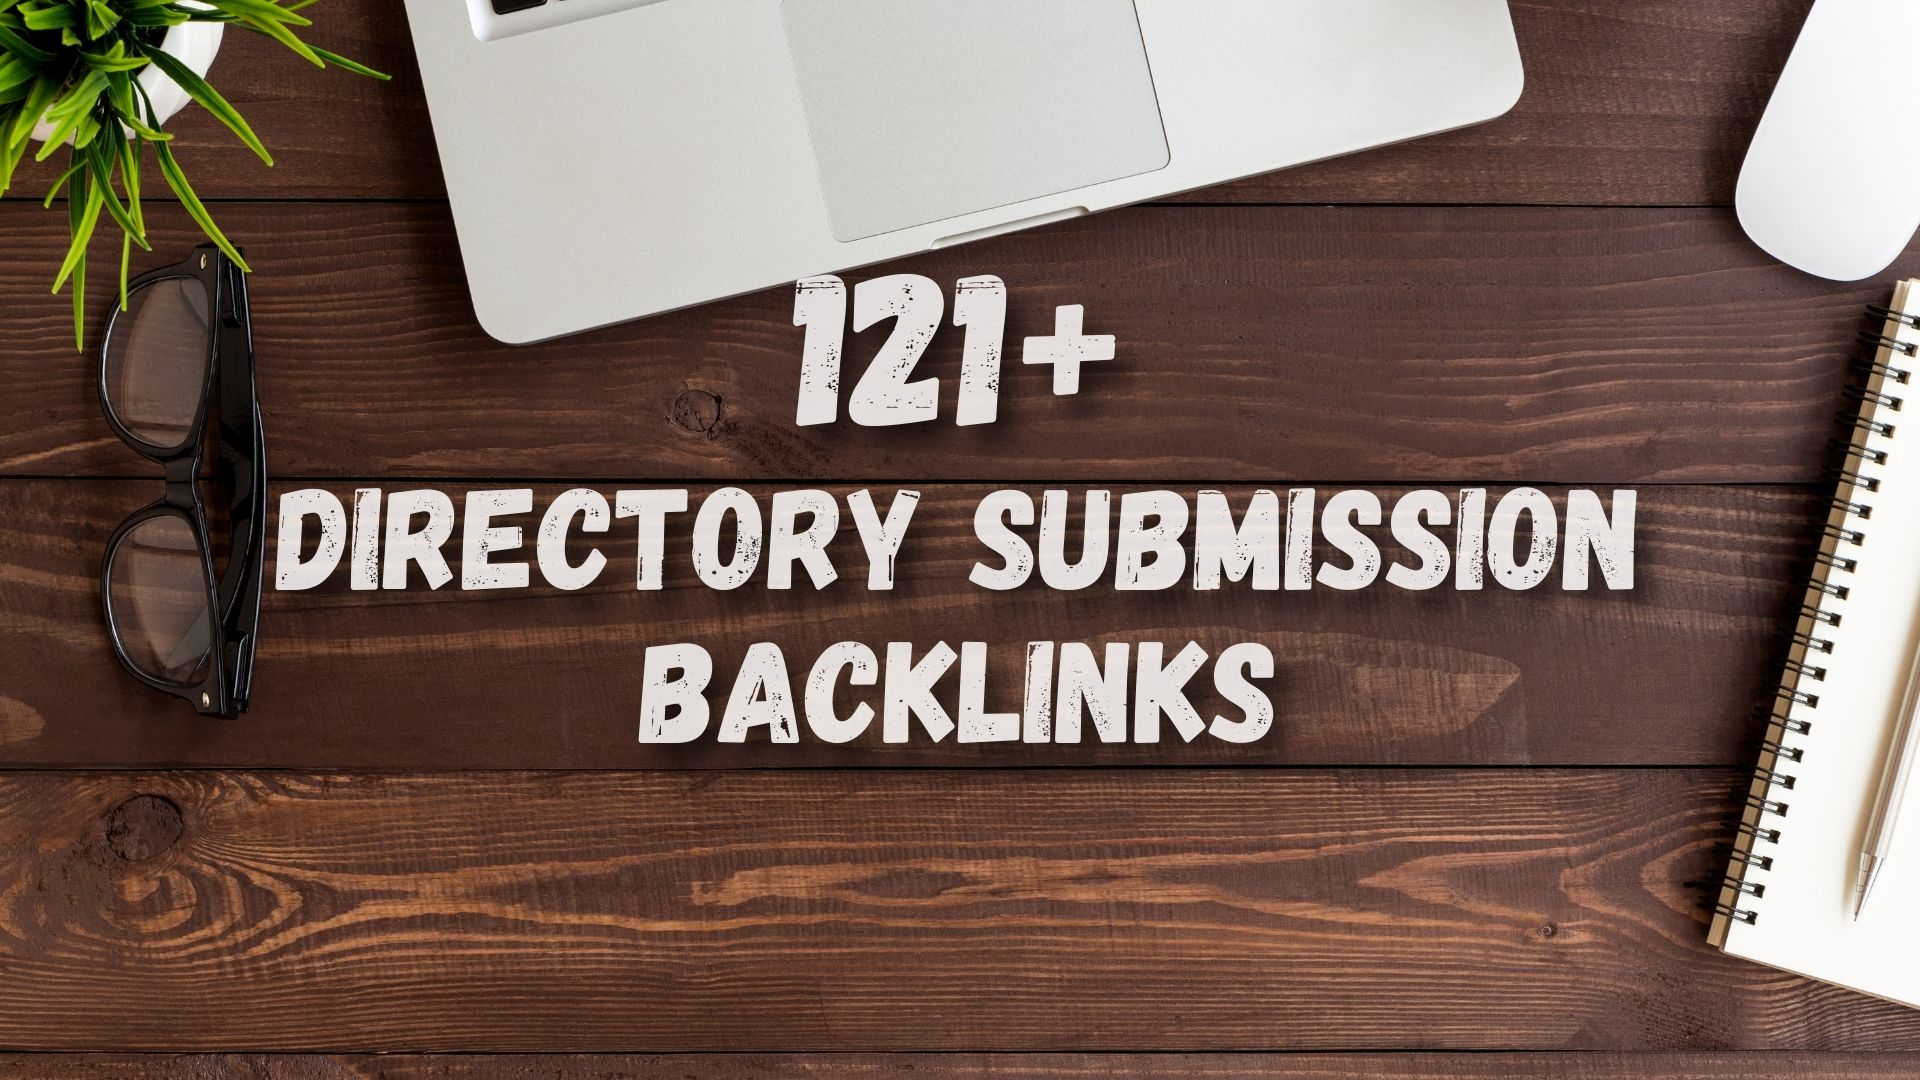 121+ Directory Submission SEO backlinks